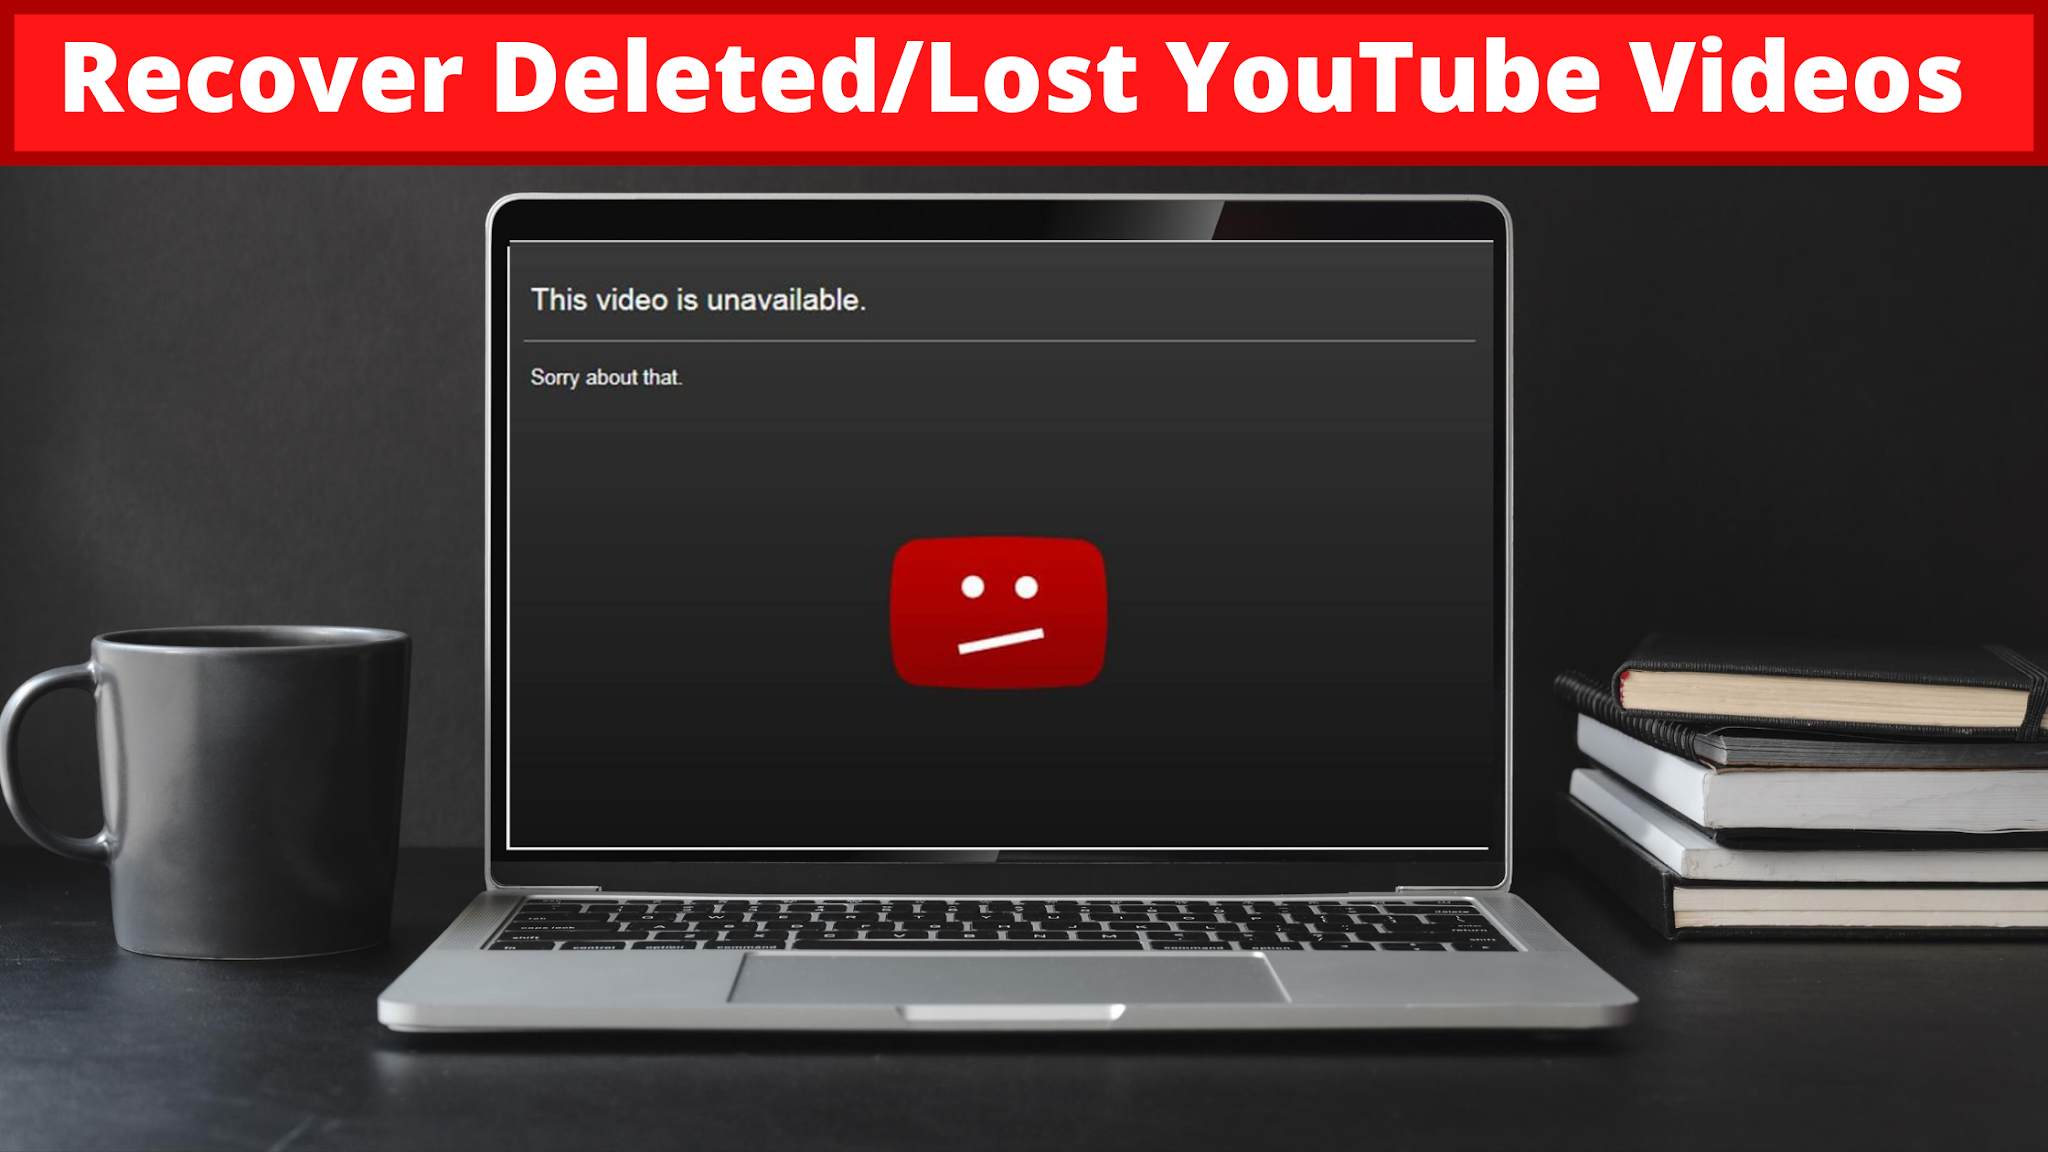 [Solved] How To Recover Deleted/Lost YouTube Videos In 2020 ?